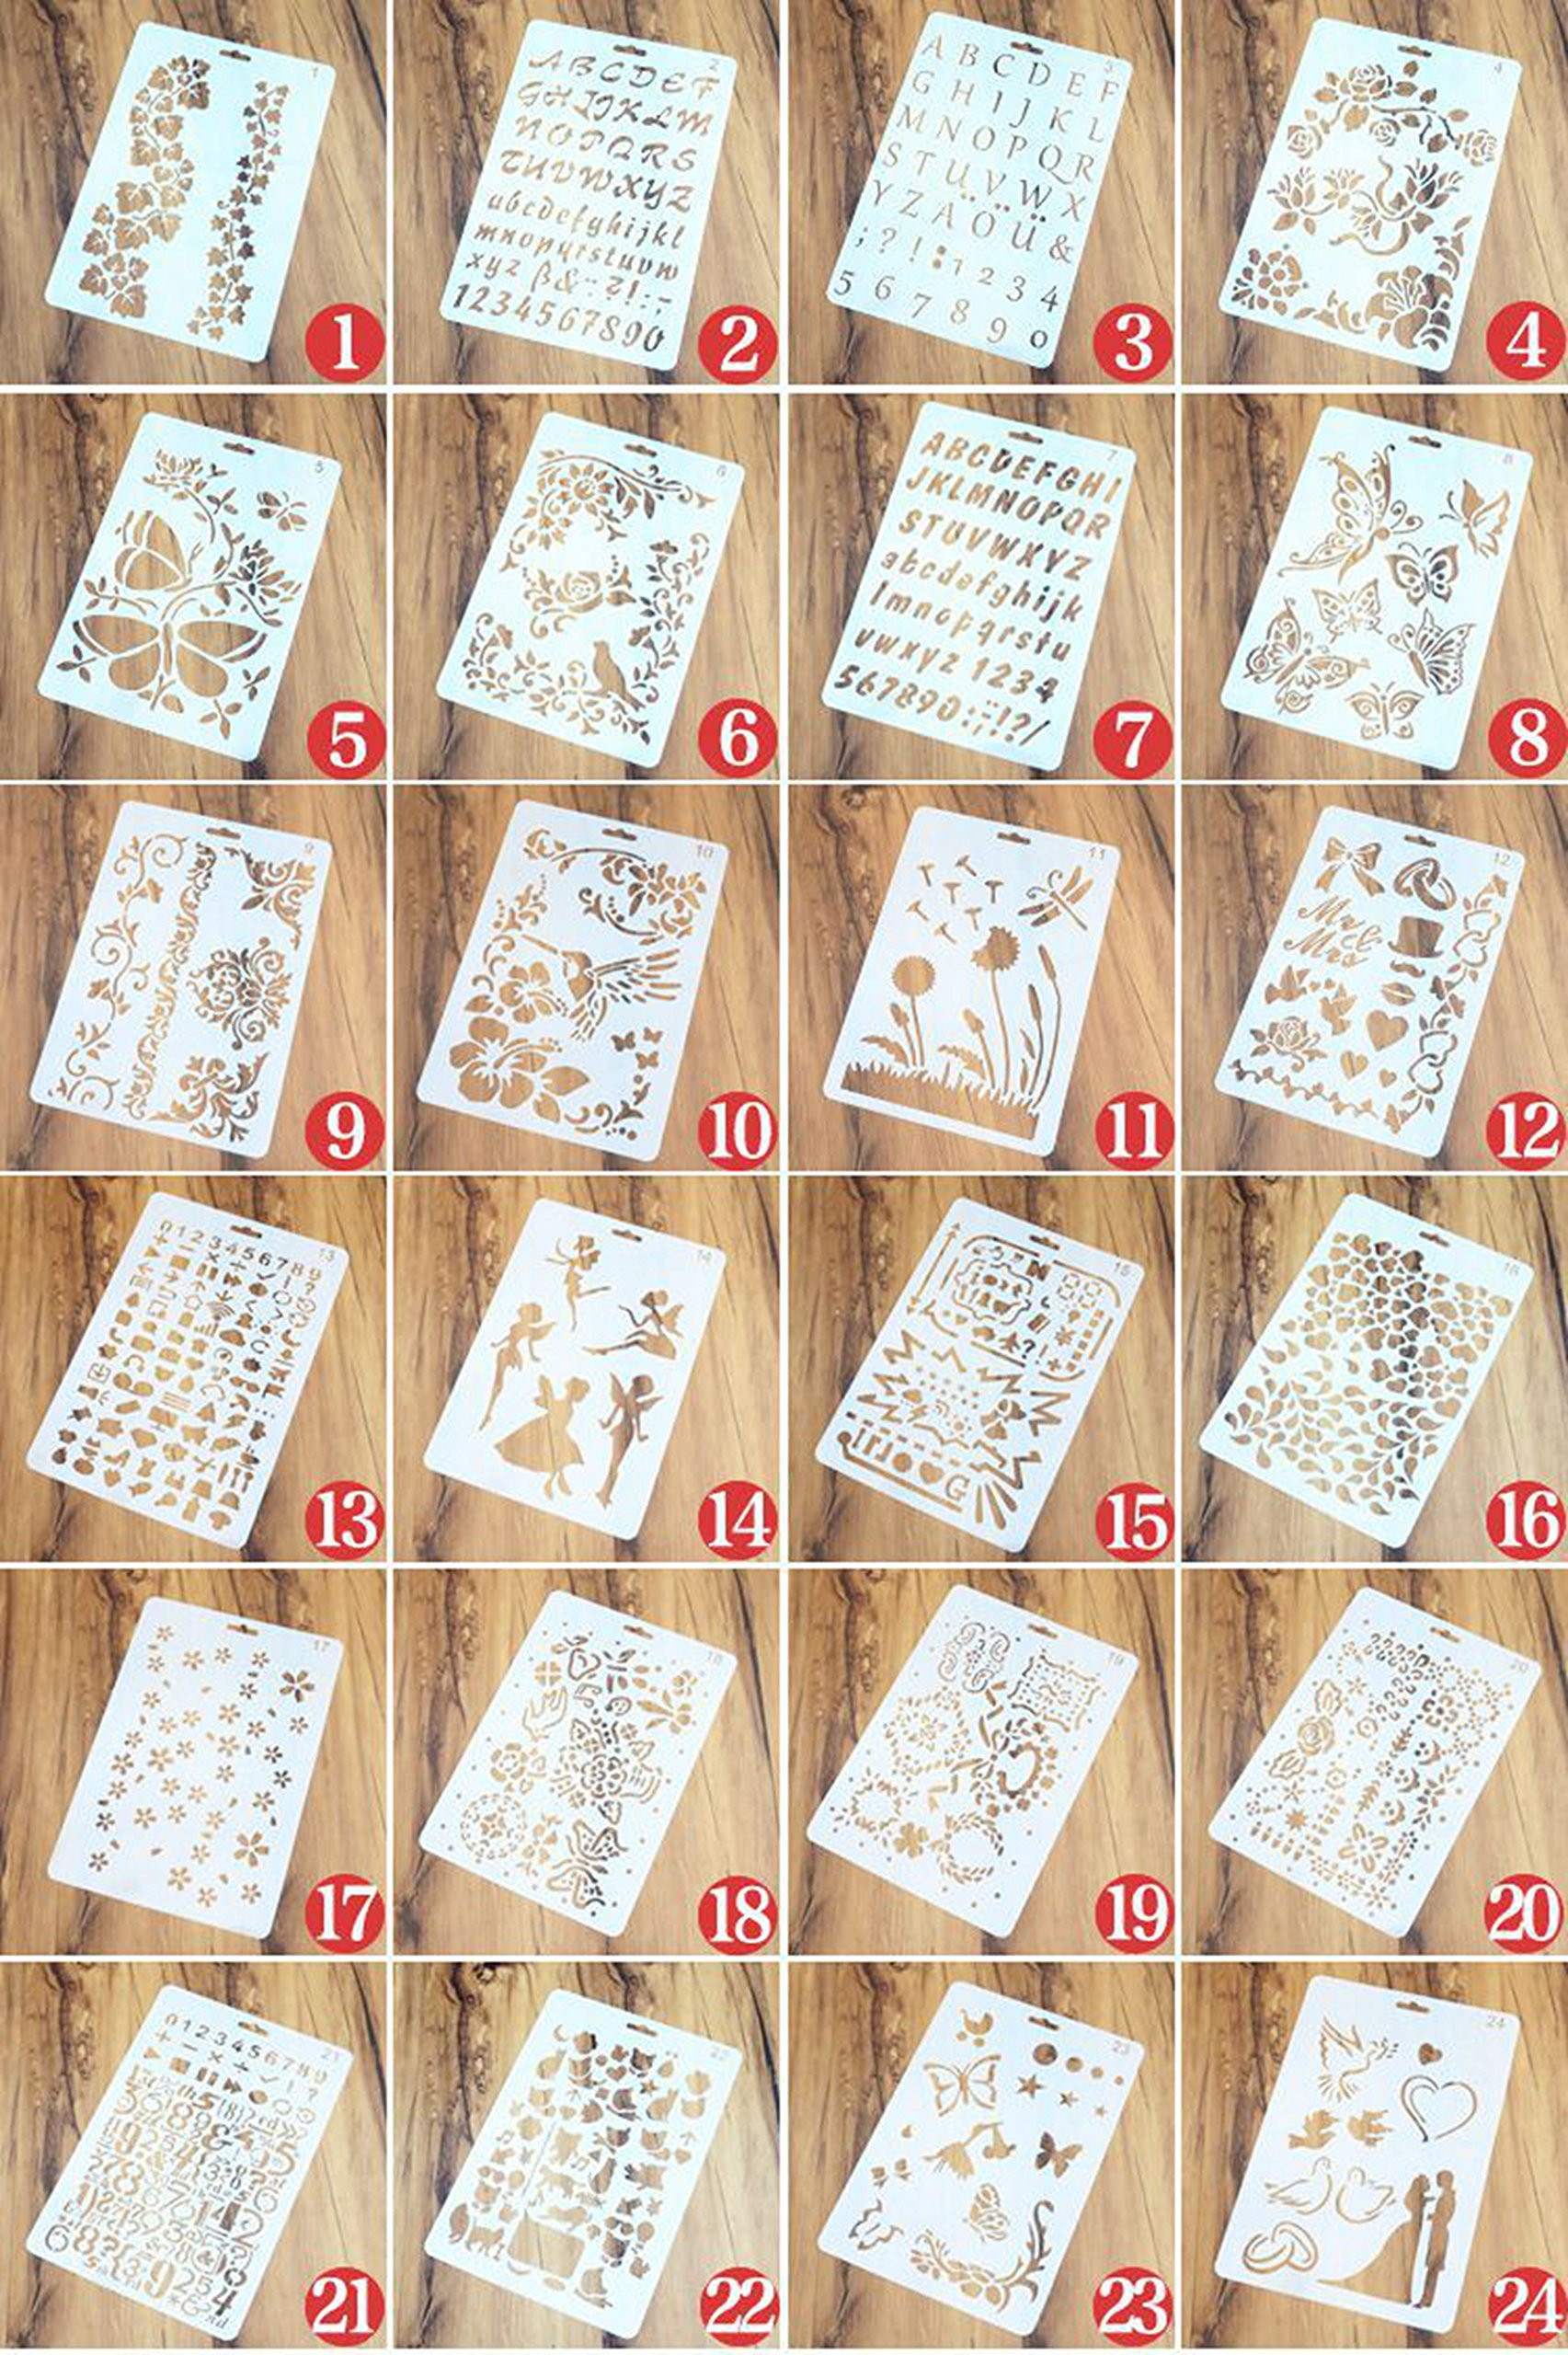 Buy 2 Pack Diy Quilling Board Template 7 Inches X 8 Inches Cork